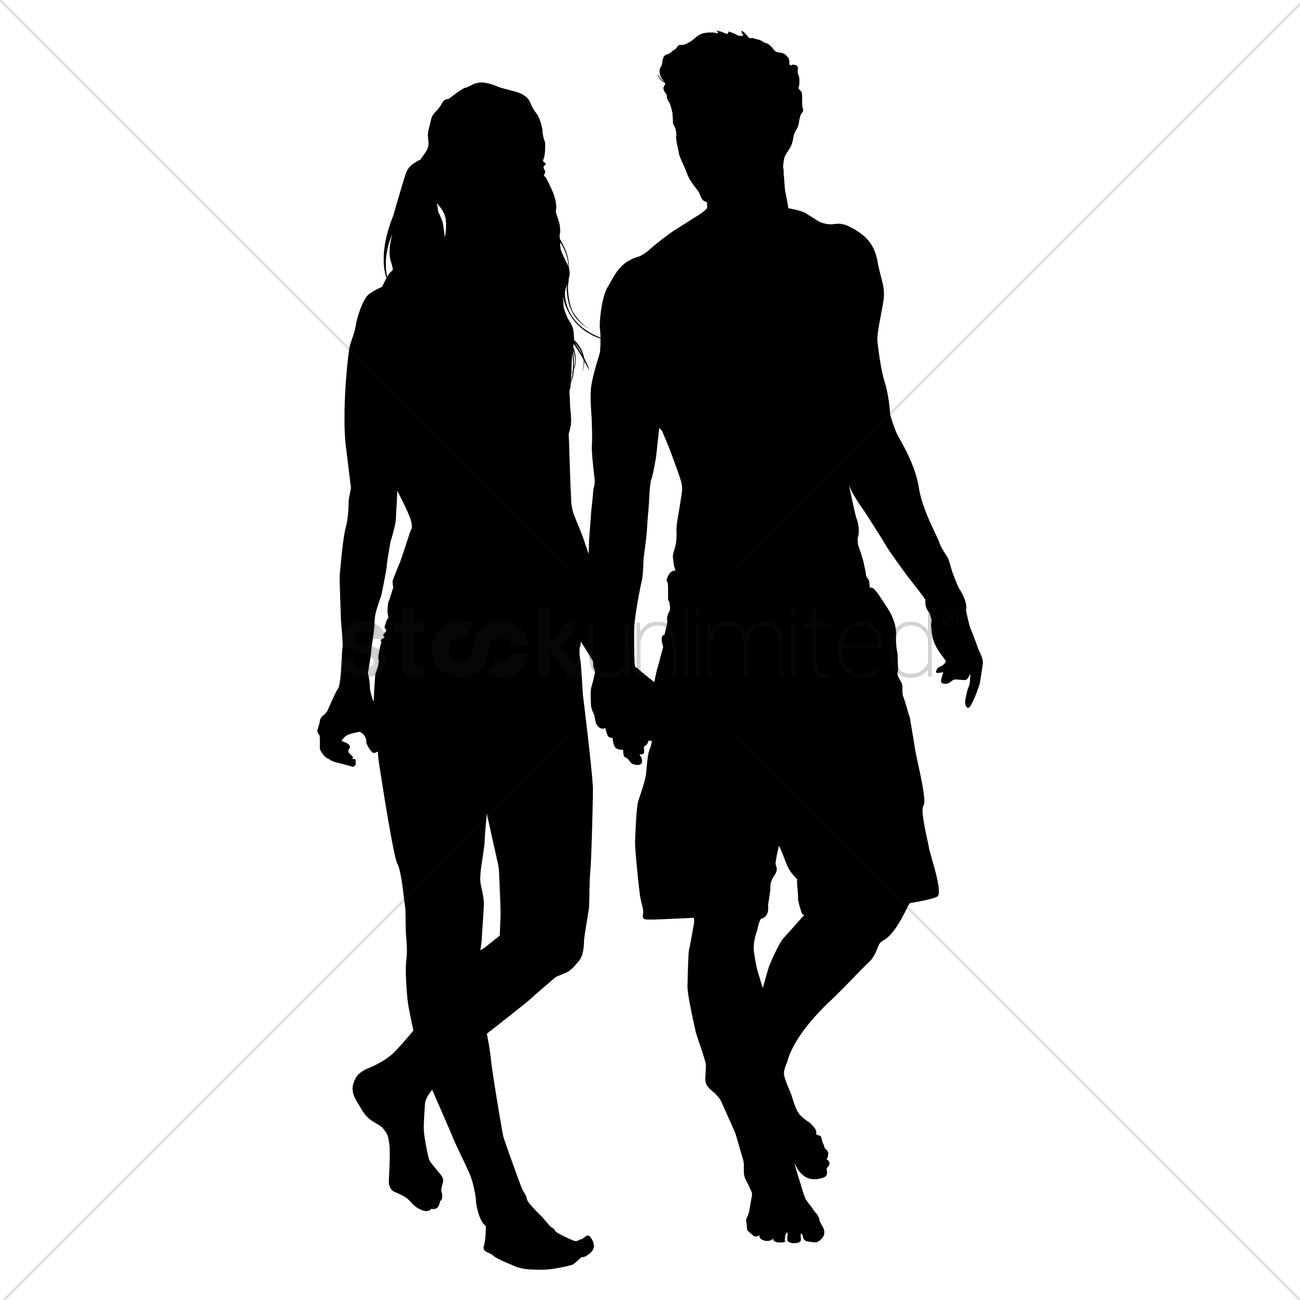 Walking Together Silhouette.